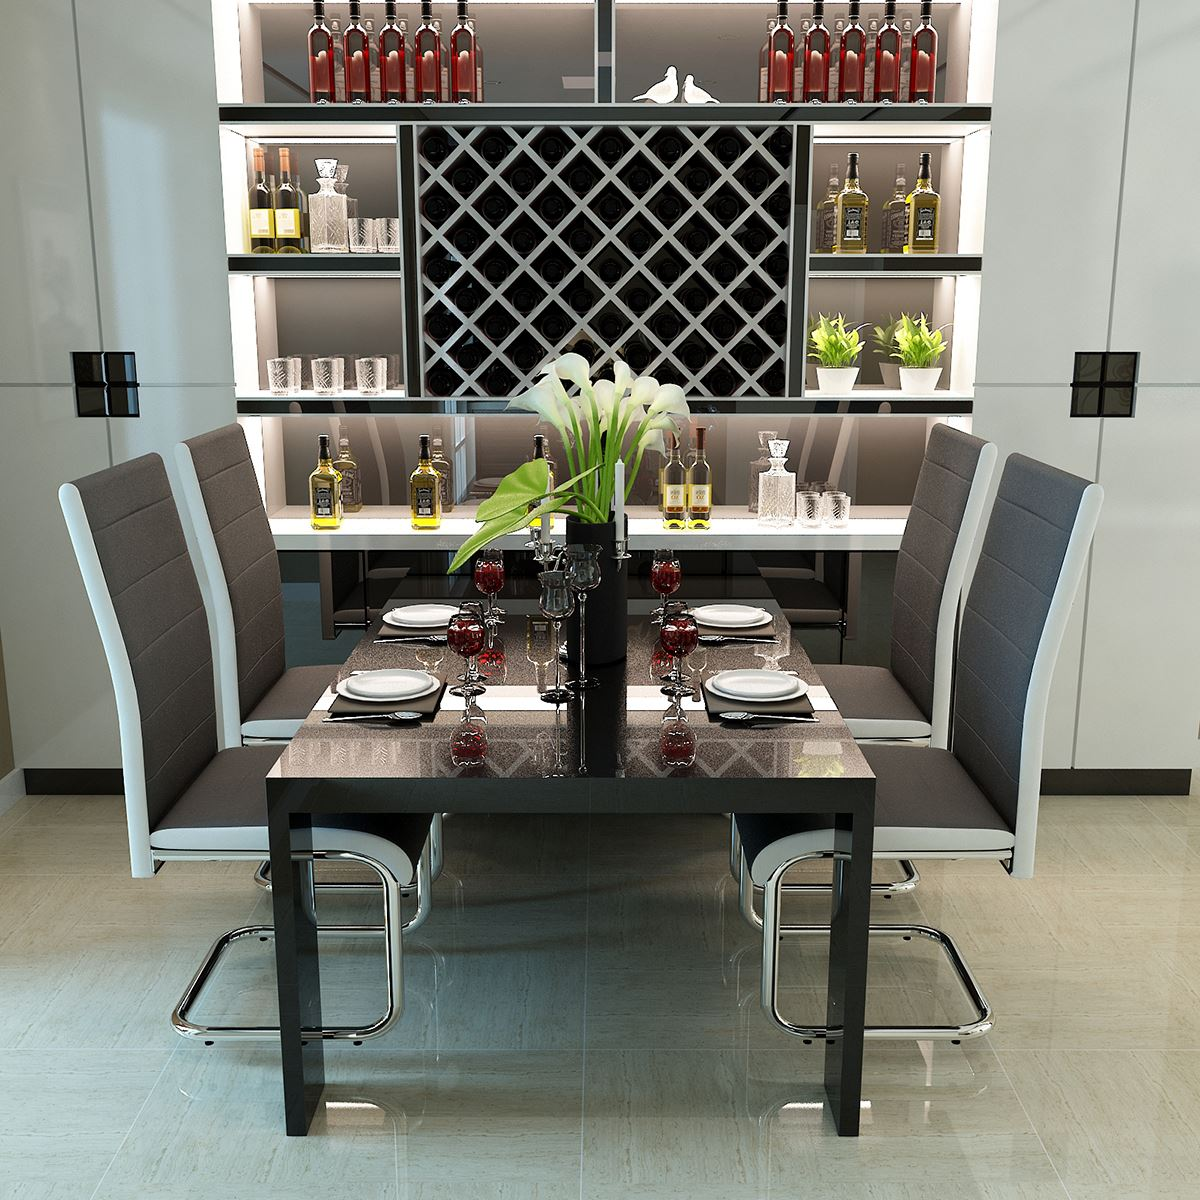 Panana 2/4 X New Gray Faux Leather Dining Chairs High Back And Chrome Legs With Semi-suspended Design